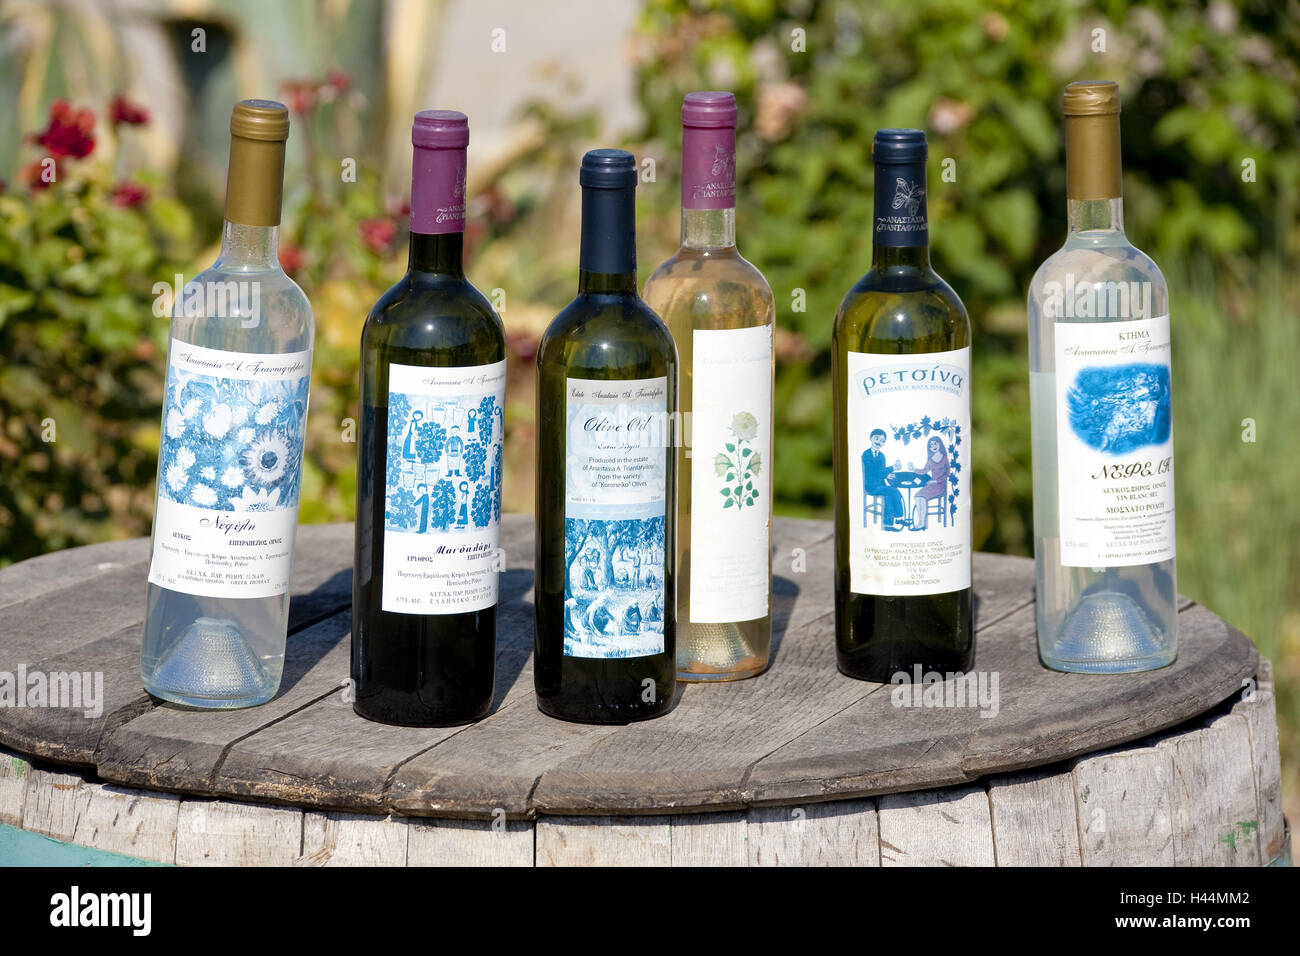 Europe, Southern, Europe, Greece, island Rhodes, rhodische wines and olive oils, - Stock Image